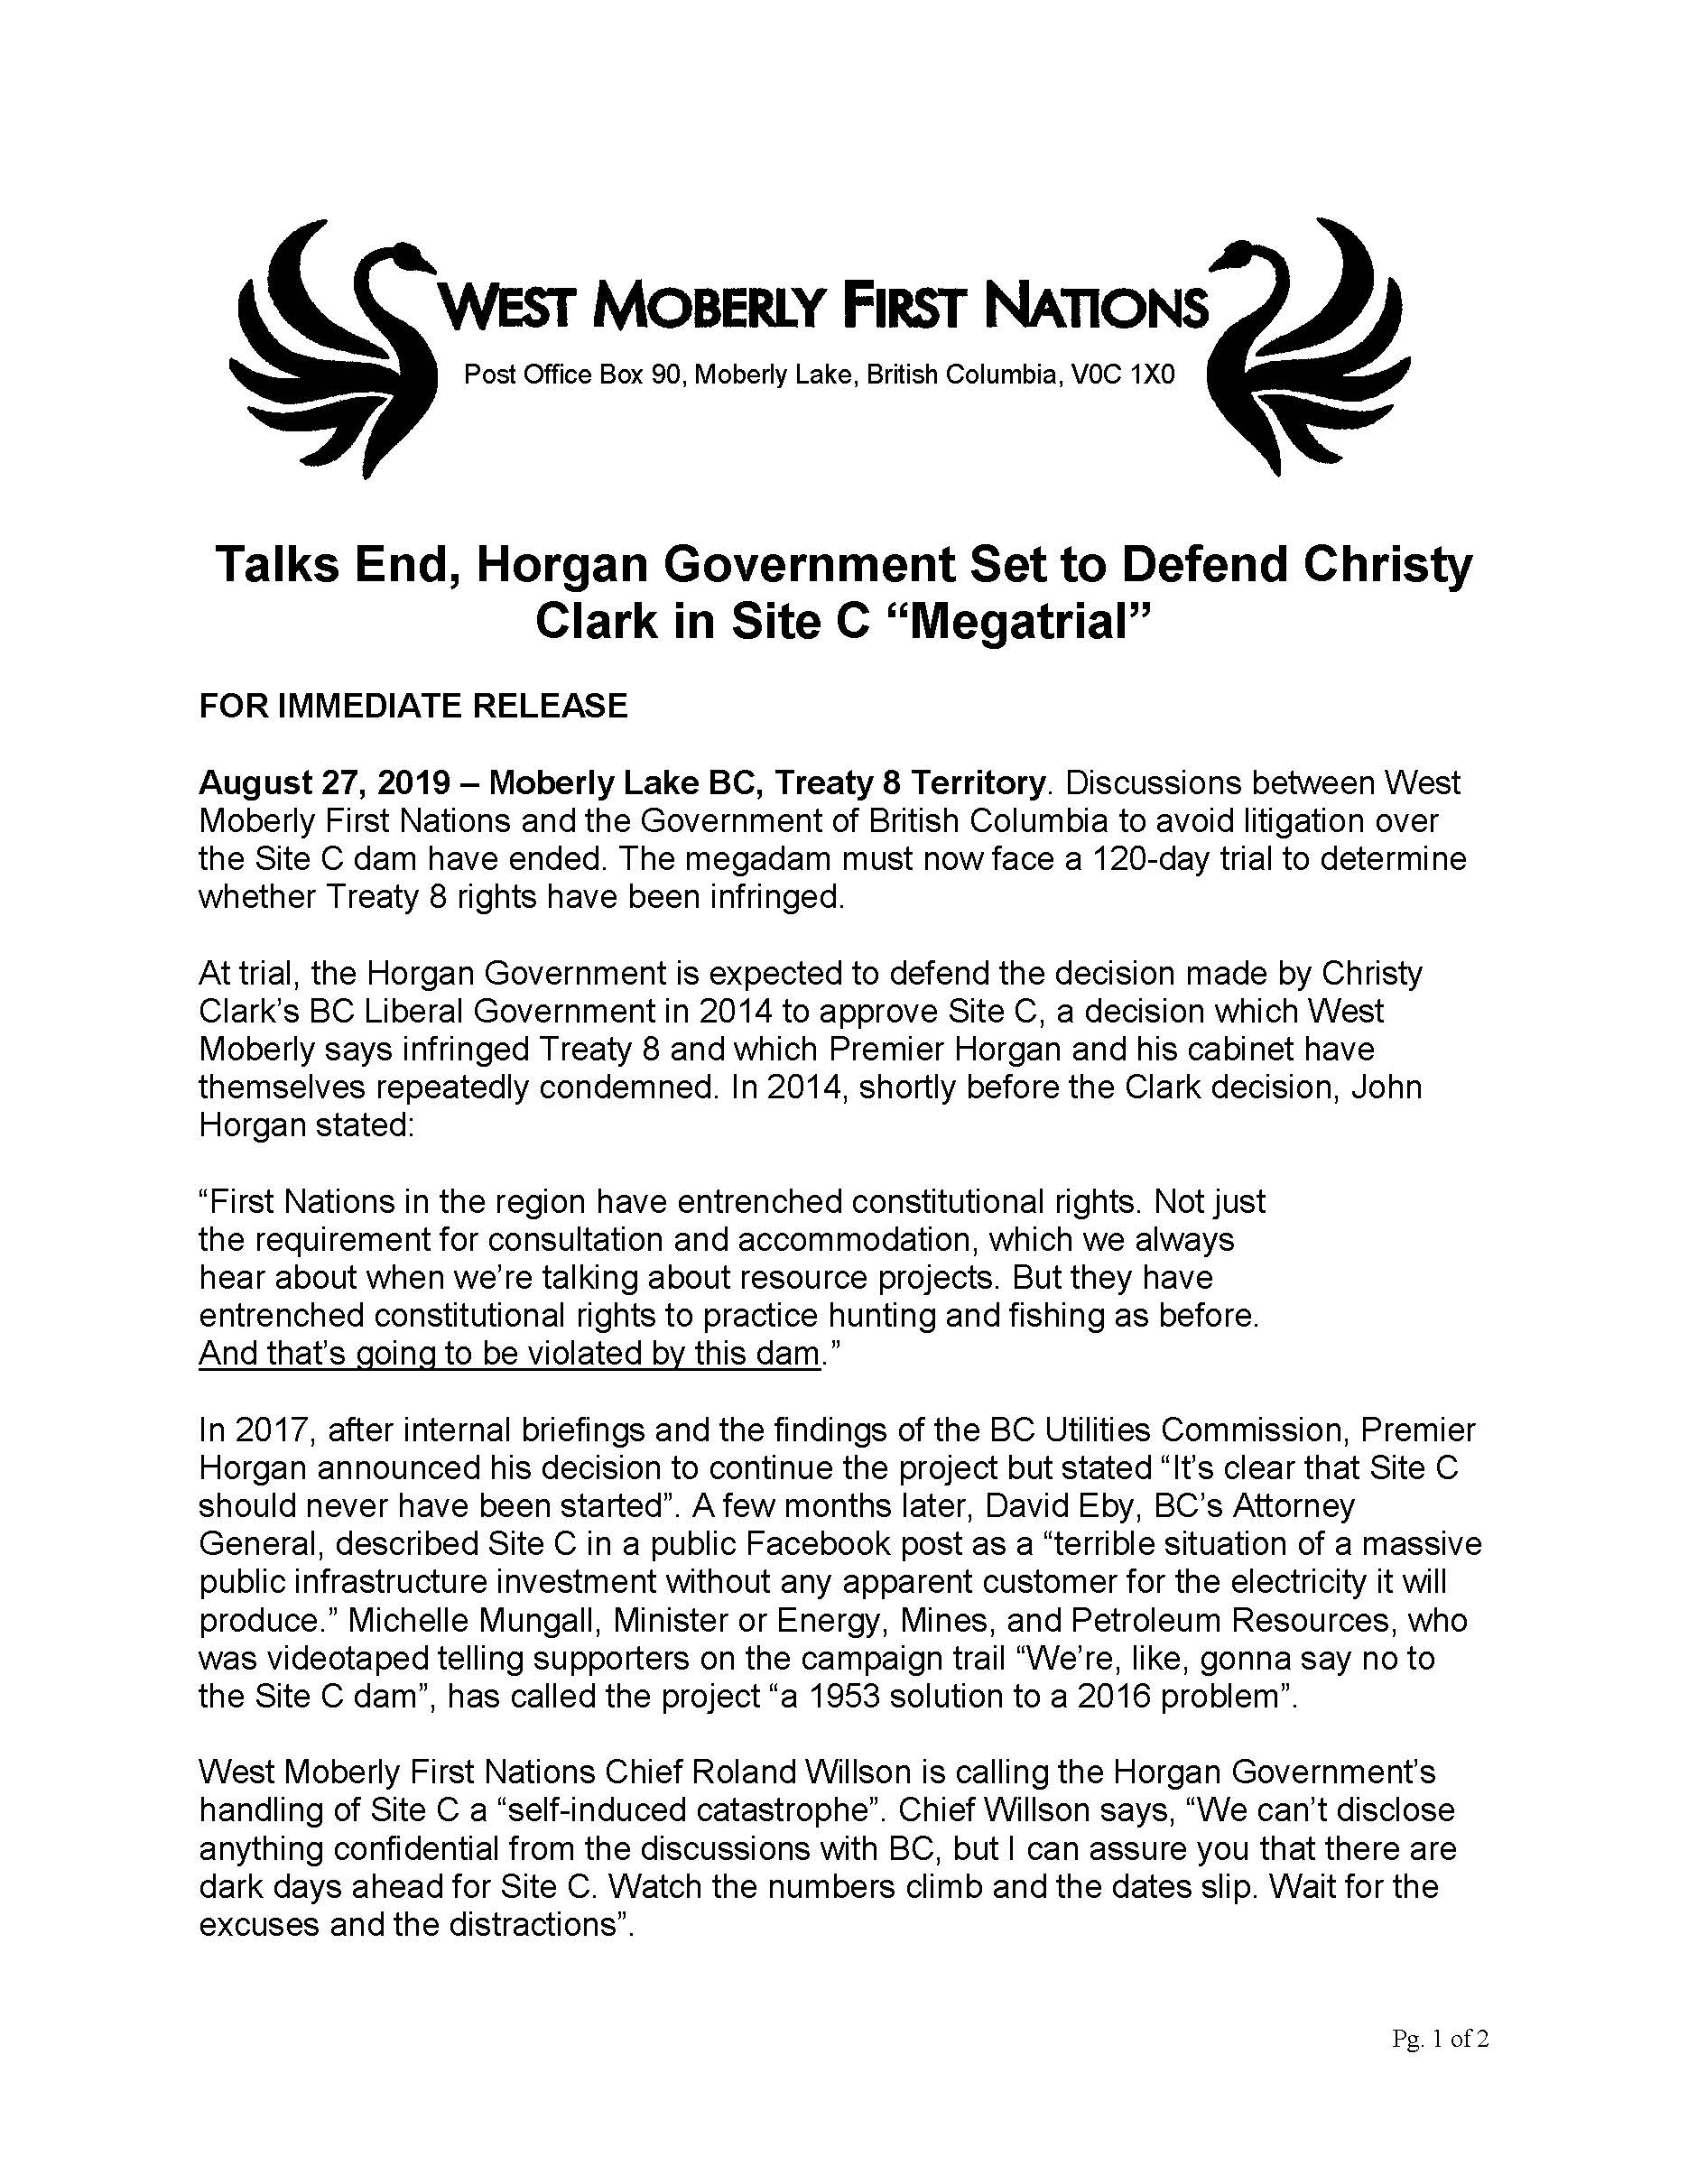 2019 08 27 NR Talks End Forcing Horgan Government into Mega Trial on Site C (final)_Page_1.jpg